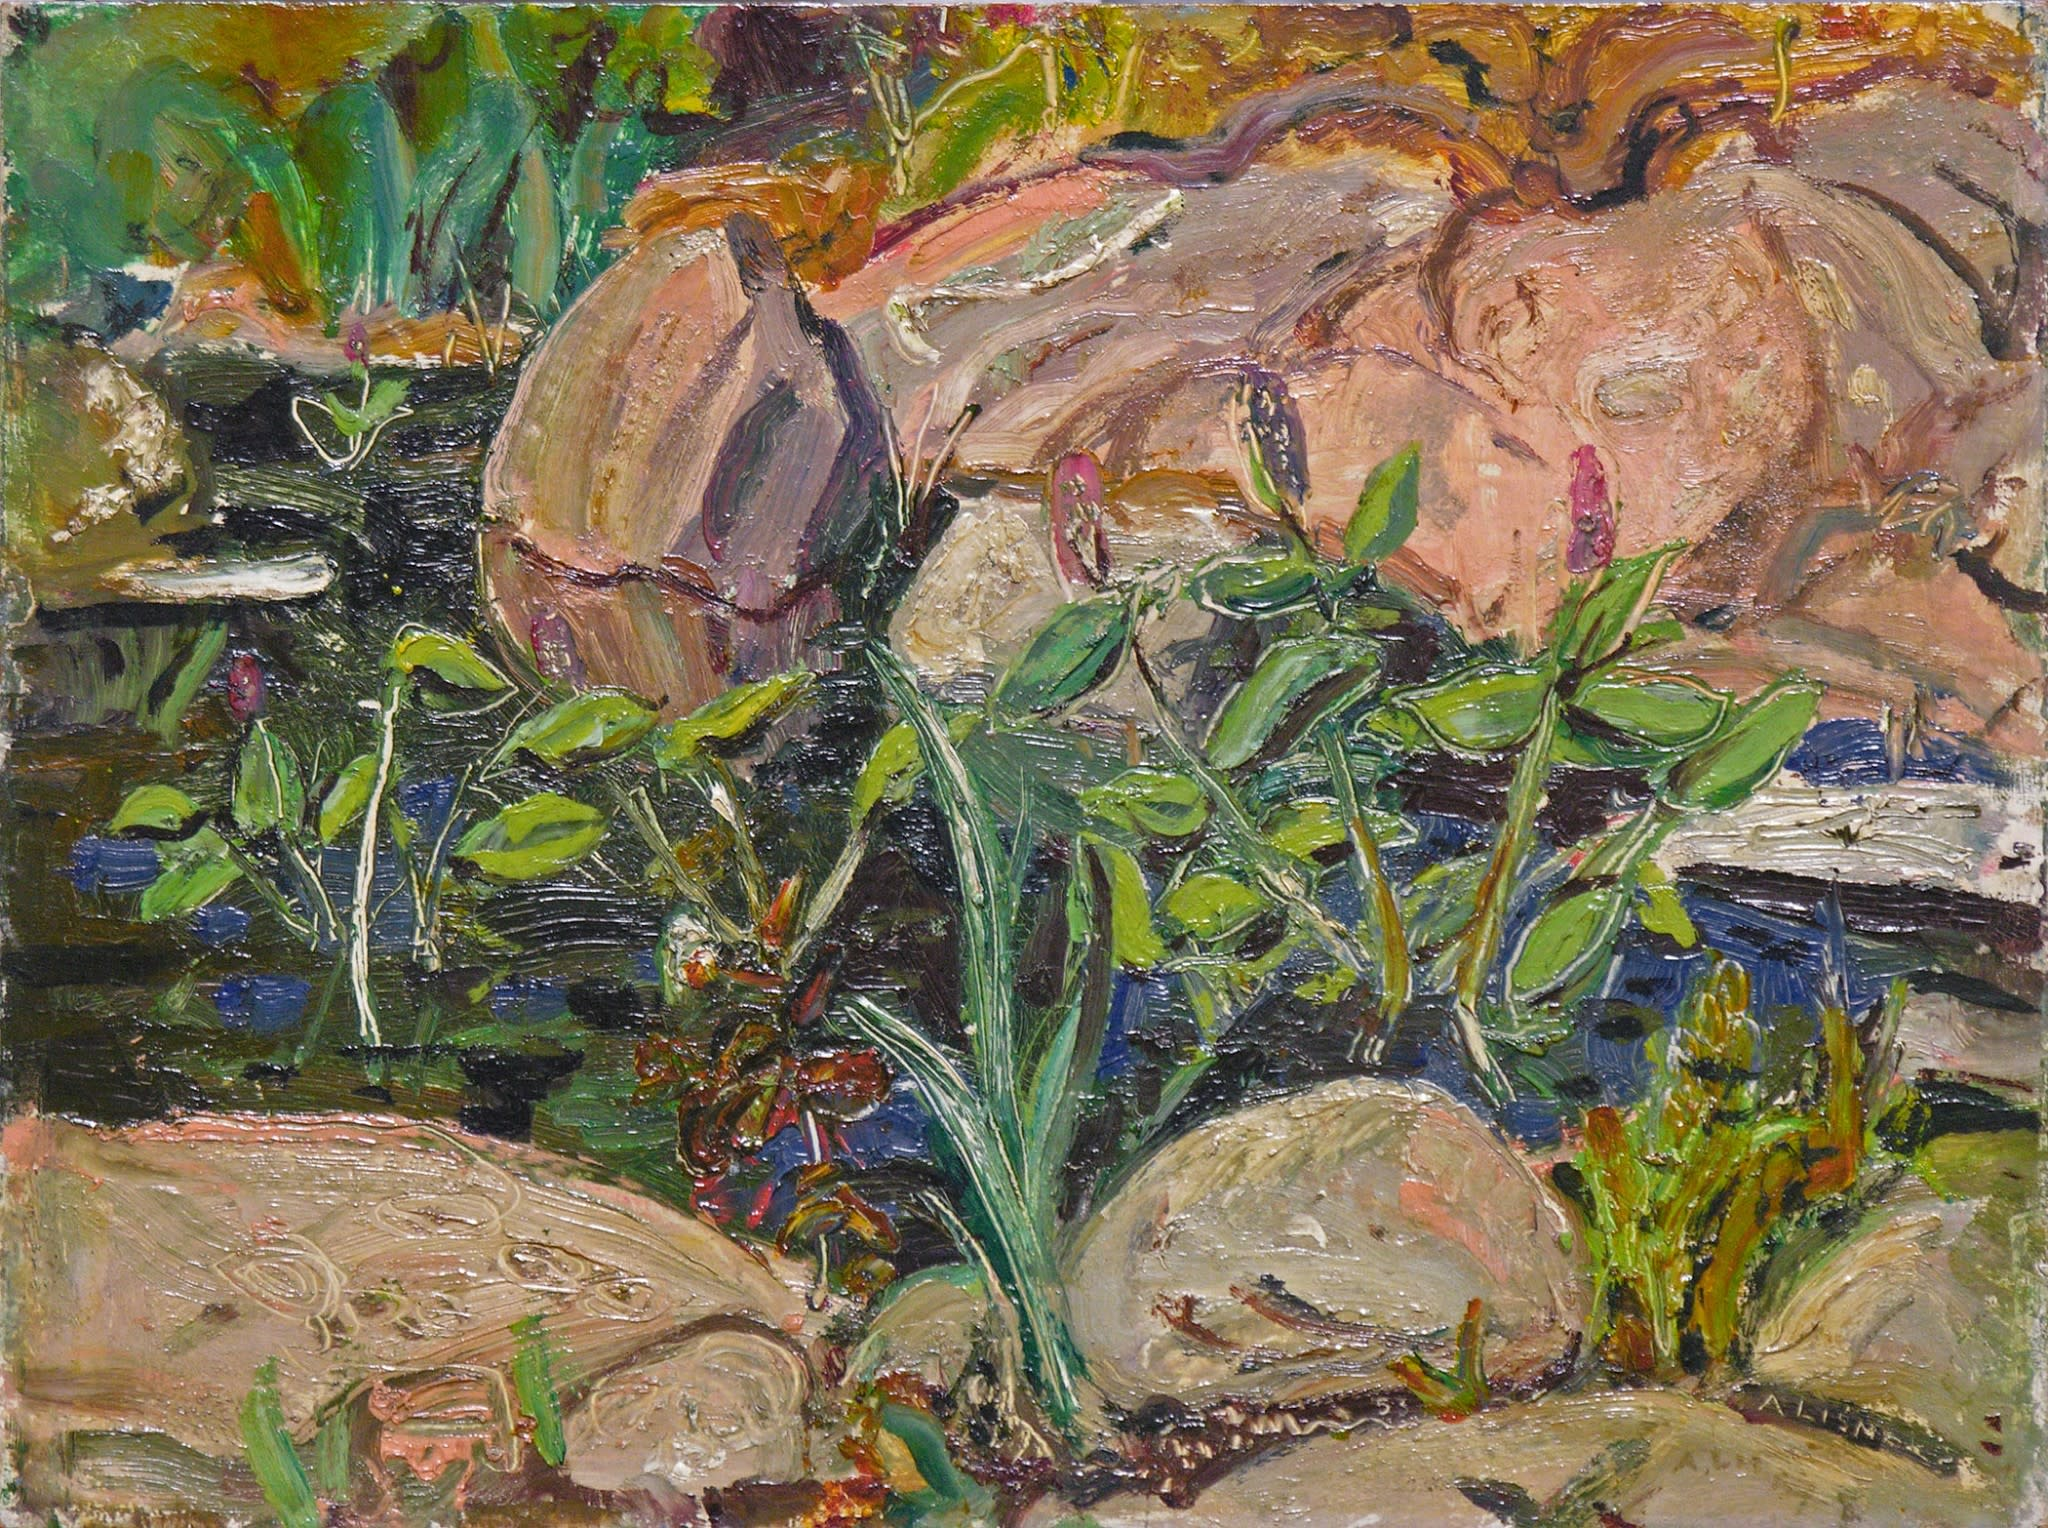 Arthur Lismer, Rocks and Pool, Georgian Bay, 1953